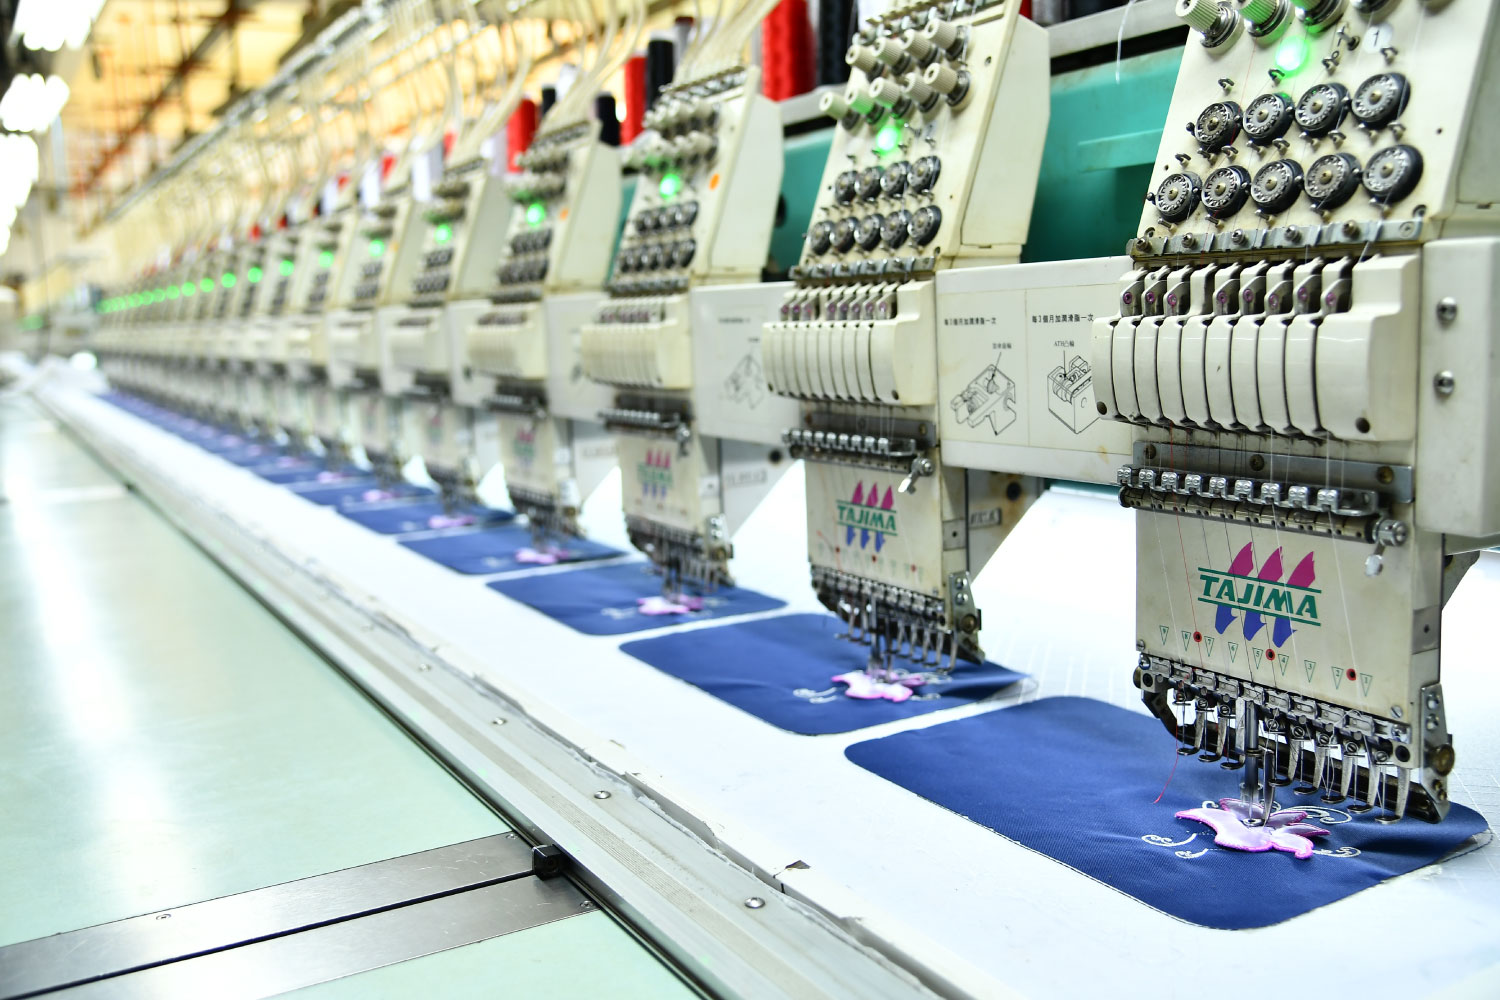 Embroidery machine making part of a bag in Starry factory in China